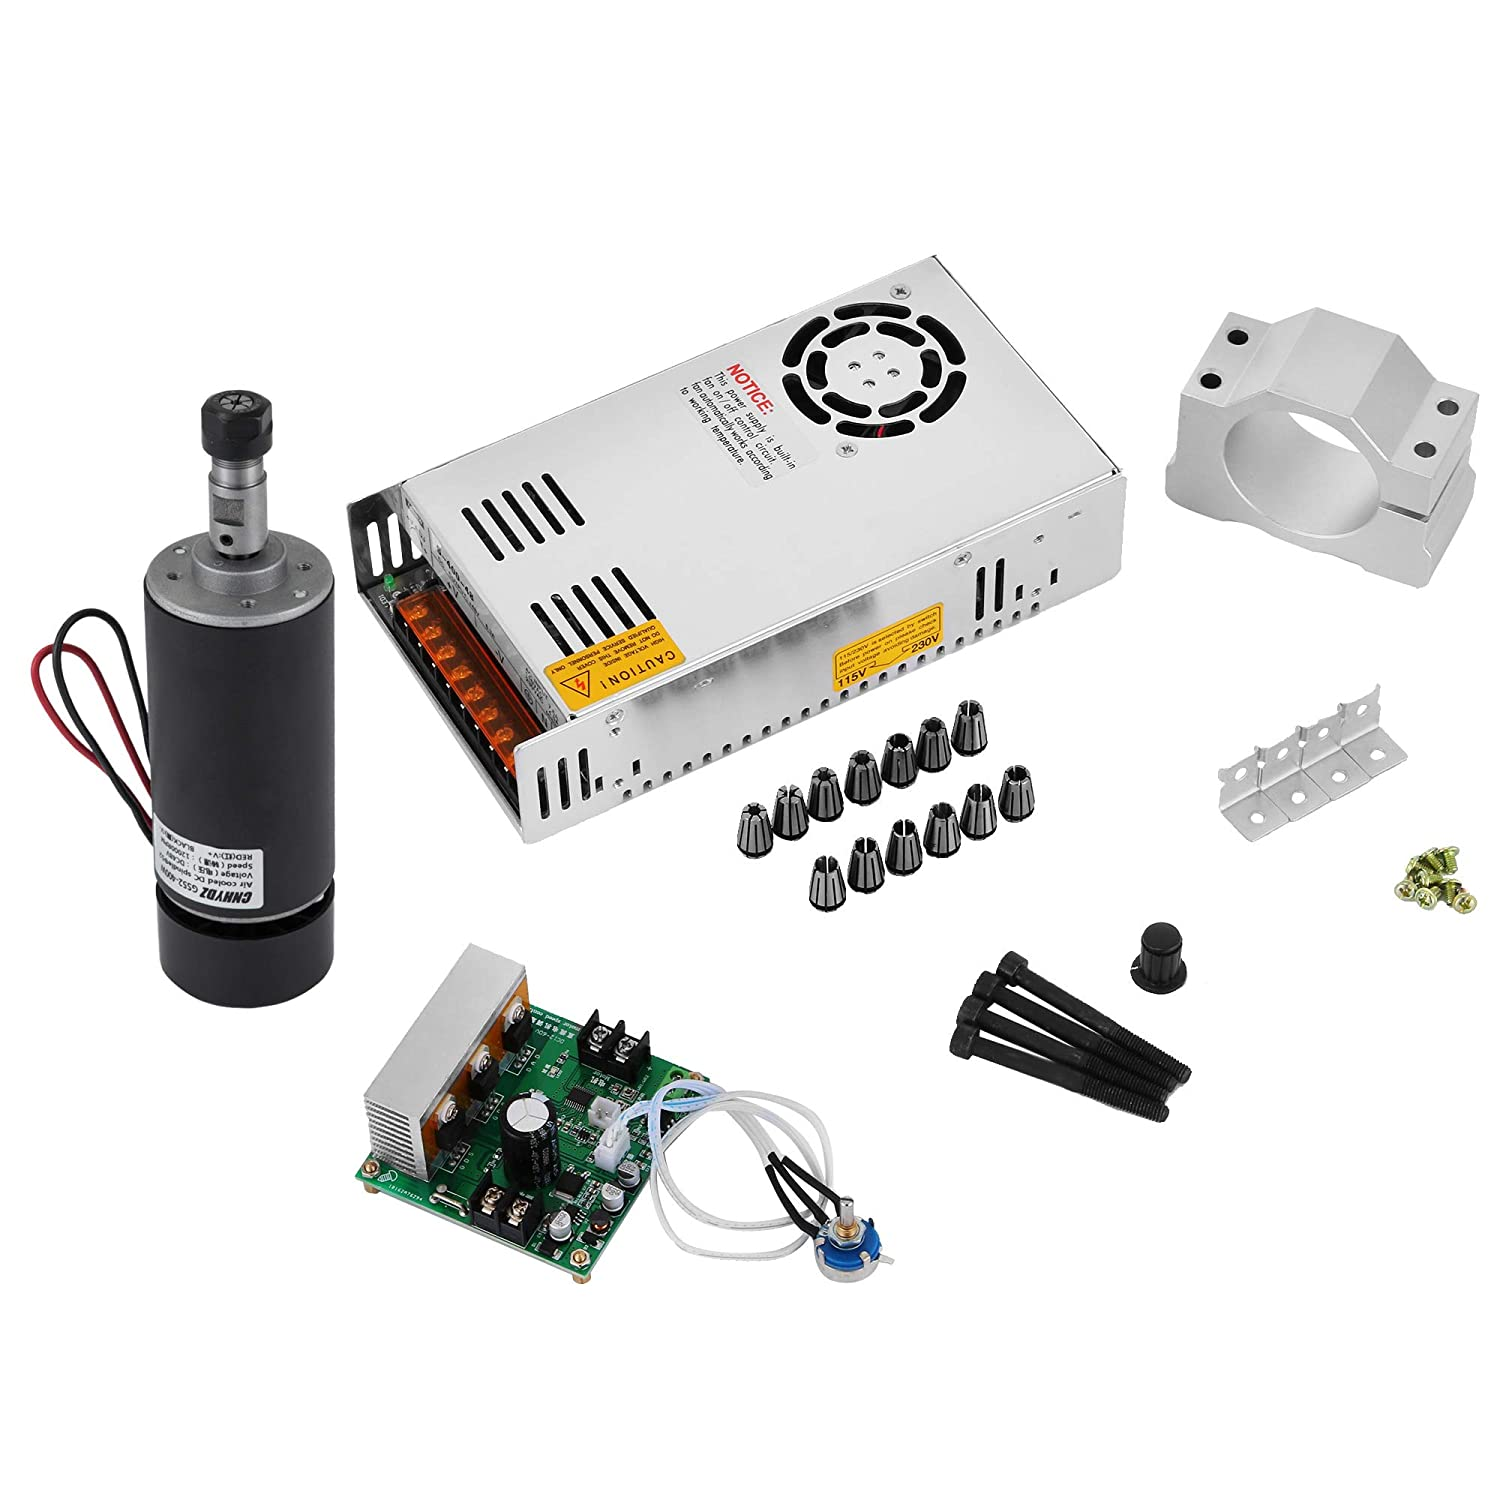 FORAVER Spindle Motor Kit 400W 4 PCS DC CNC Brushless Spindle Motor with 12000RPM PWM Driver Speed Controller and Mount Bracket Engraving Stock (4pcs Set)